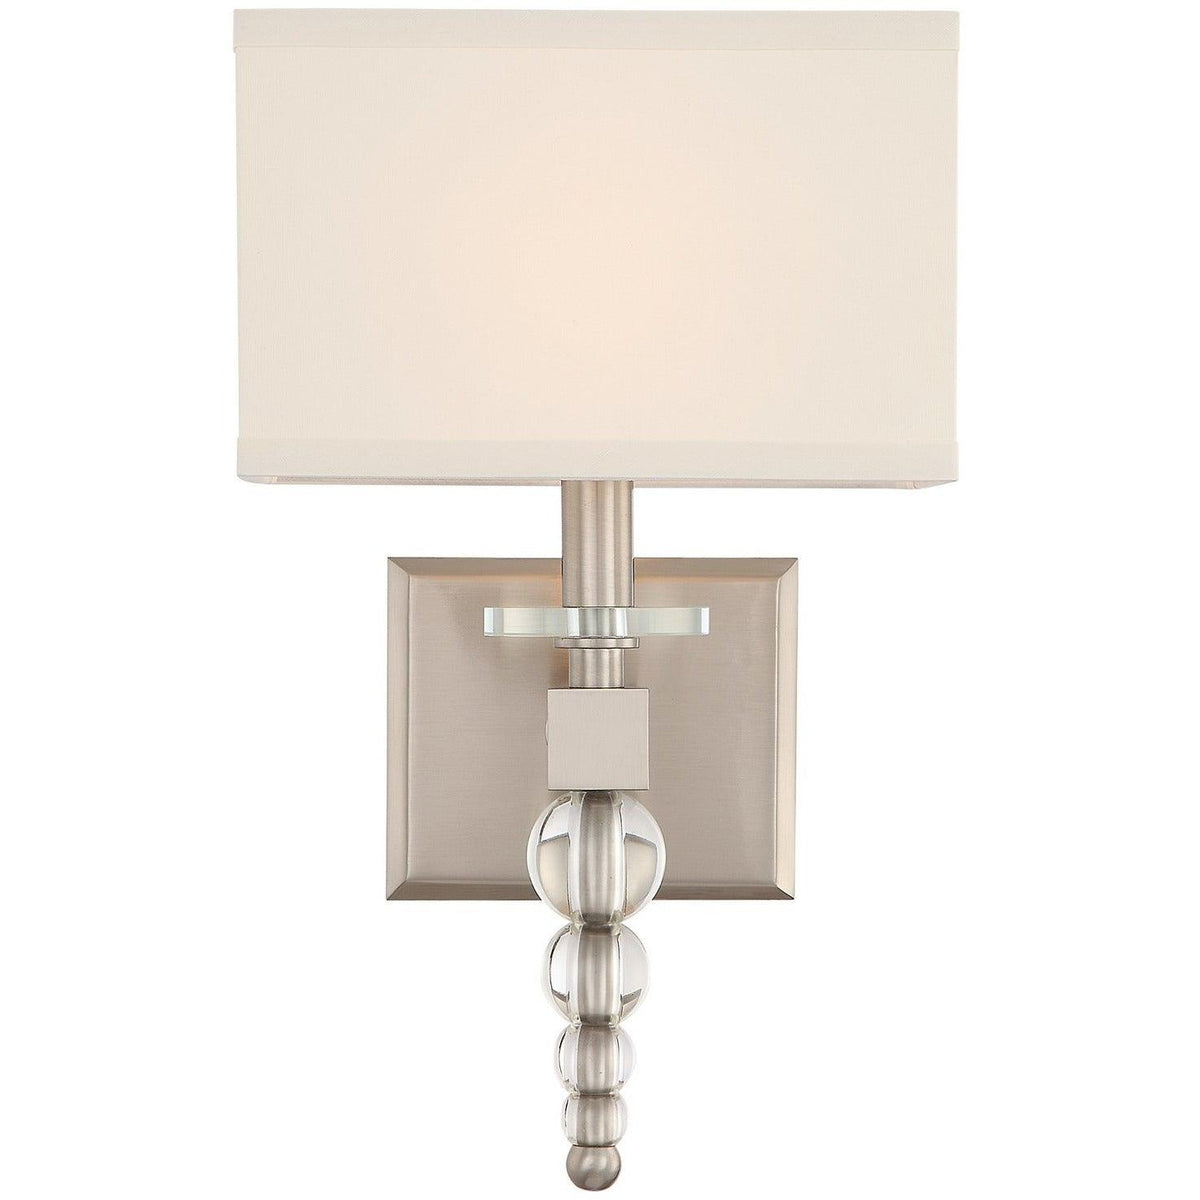 Crystorama - CLO-8892-BN - One Light Wall Mount - Clover - Brushed Nickel